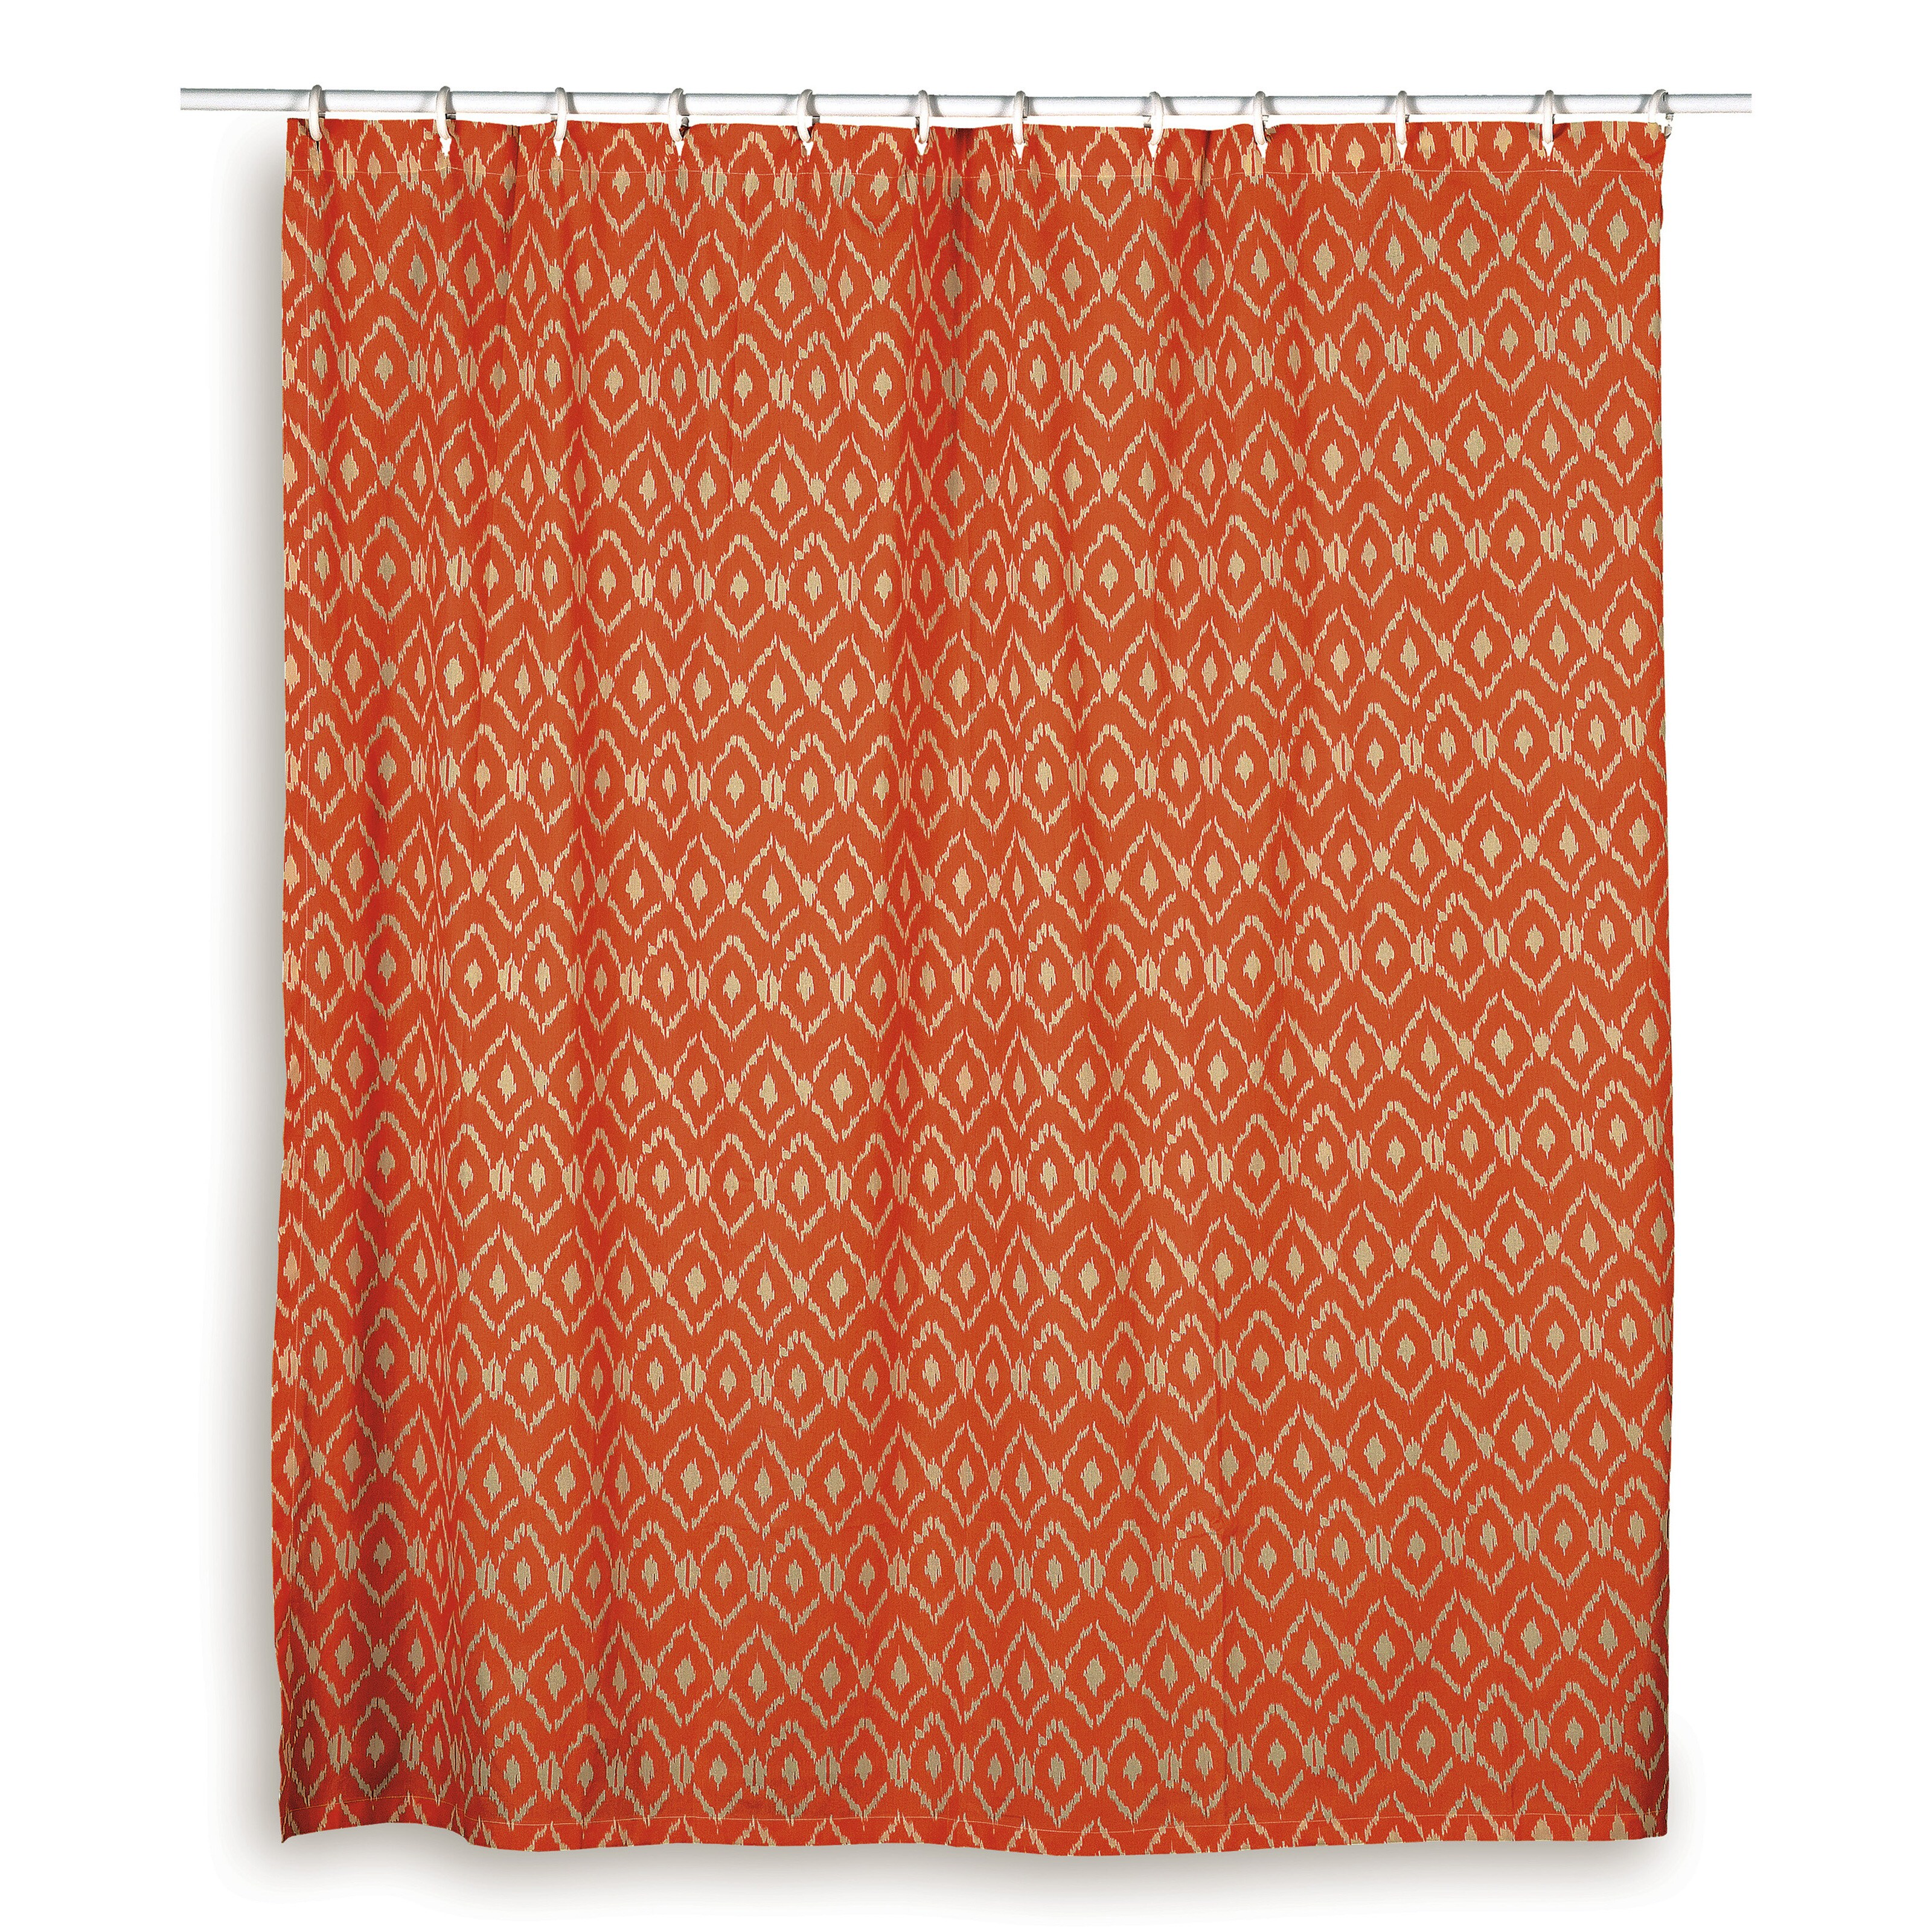 Rizzy Home Ikat Shower Curtainsm Blue Red Orange